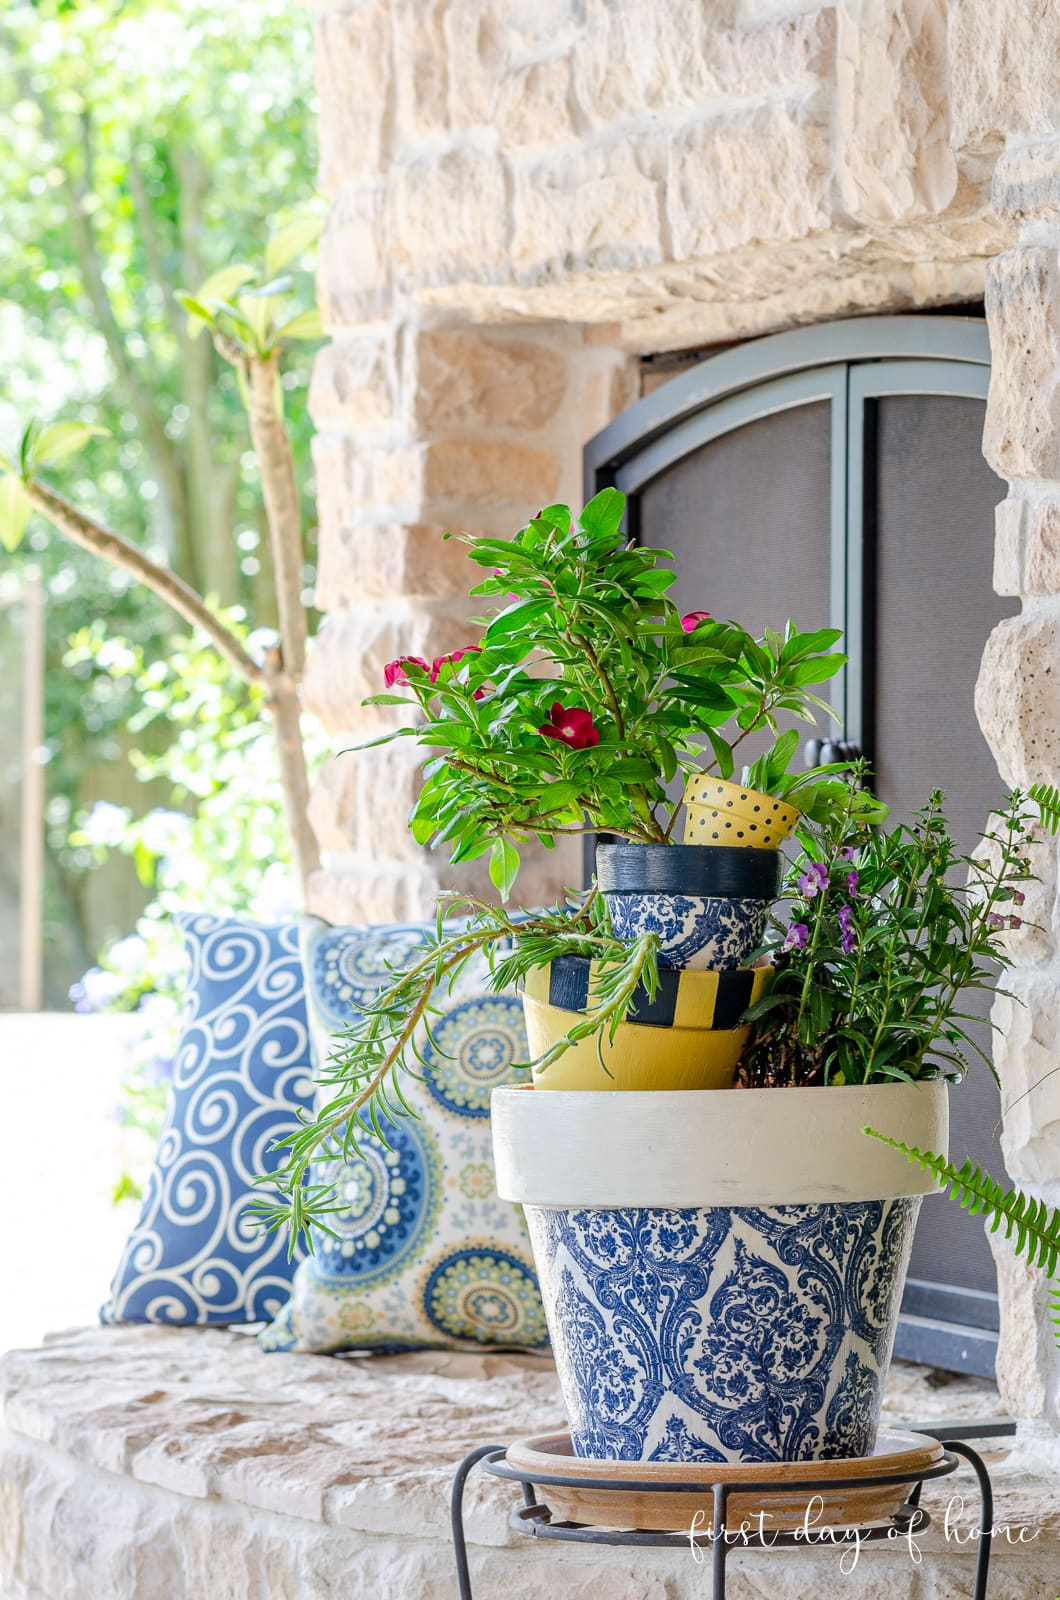 Painted terracotta pots and decoupage pots stacked with flowers on outdoor patio fireplace